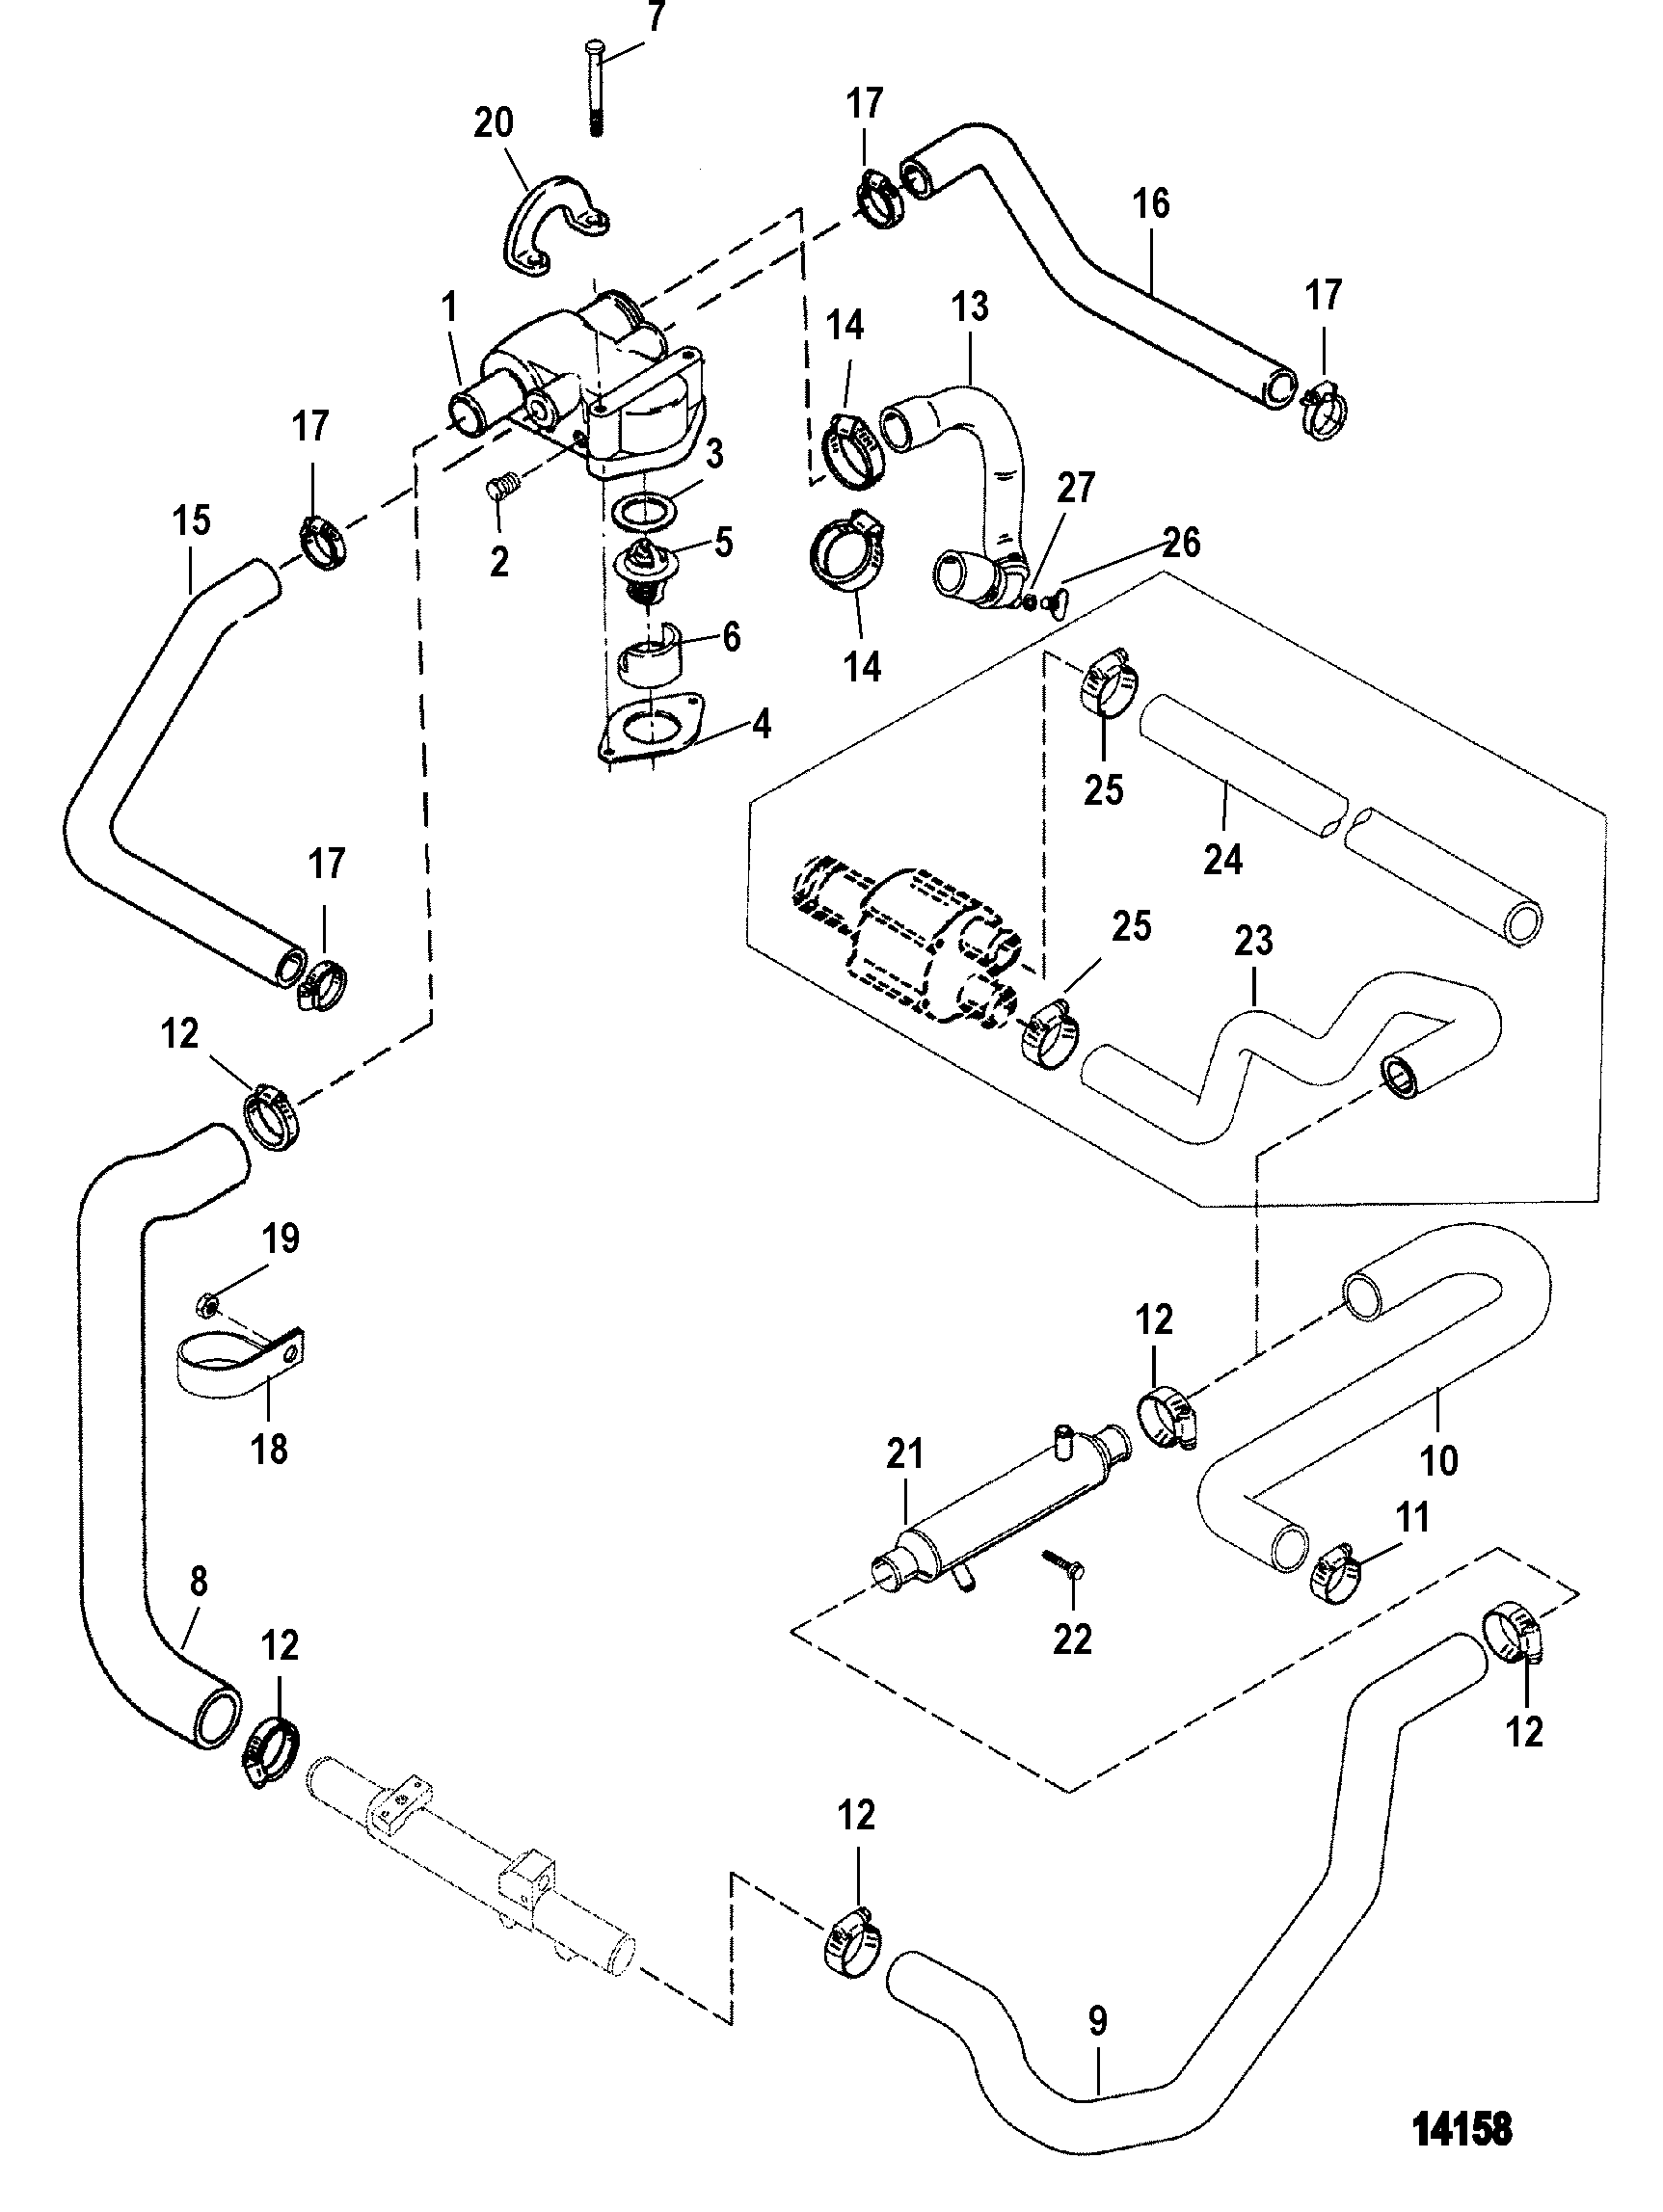 5 7 hemi engine diagram without ac engine wiring diagram for 2004 durango hemi 5.7 03 hemi engine diagram #13